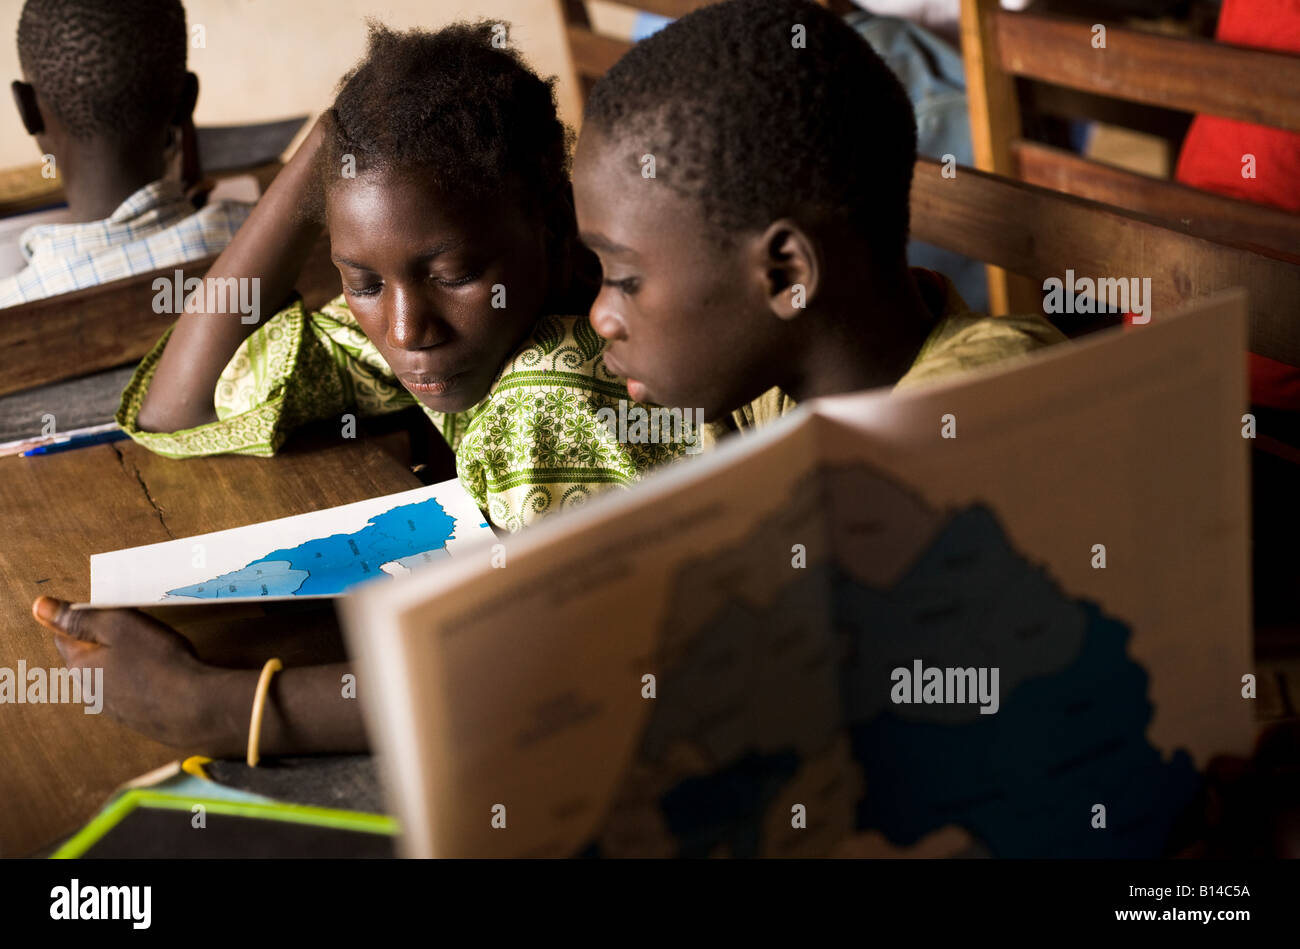 Children attend a geography class - Stock Image